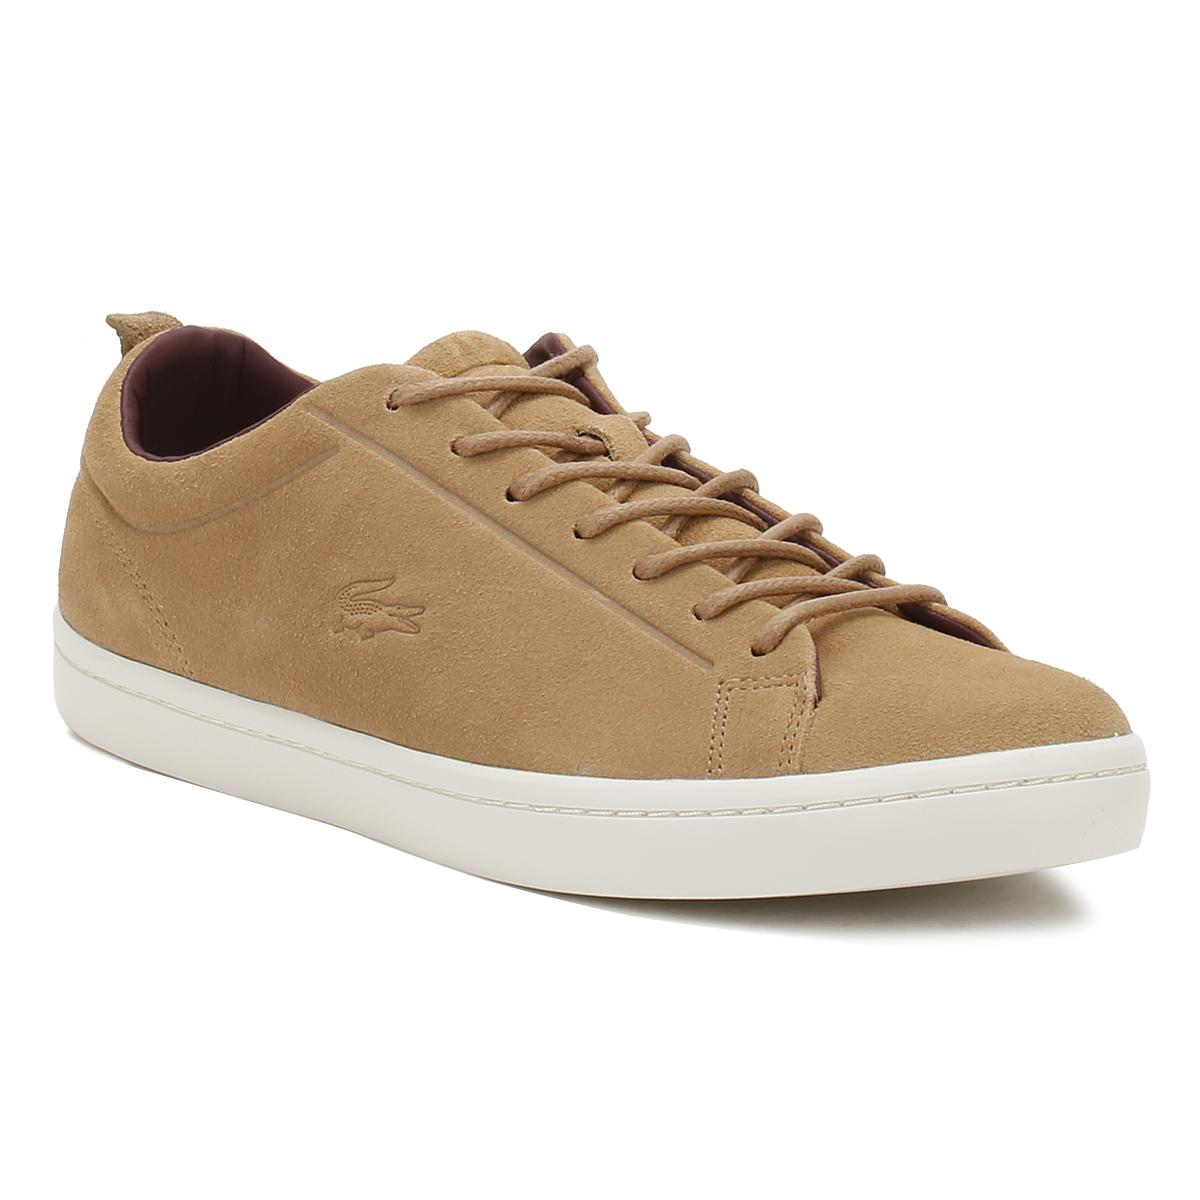 4ad21bb77 Lacoste Mens Light Tan Straightset 317 3 Trainers in Brown for Men ...